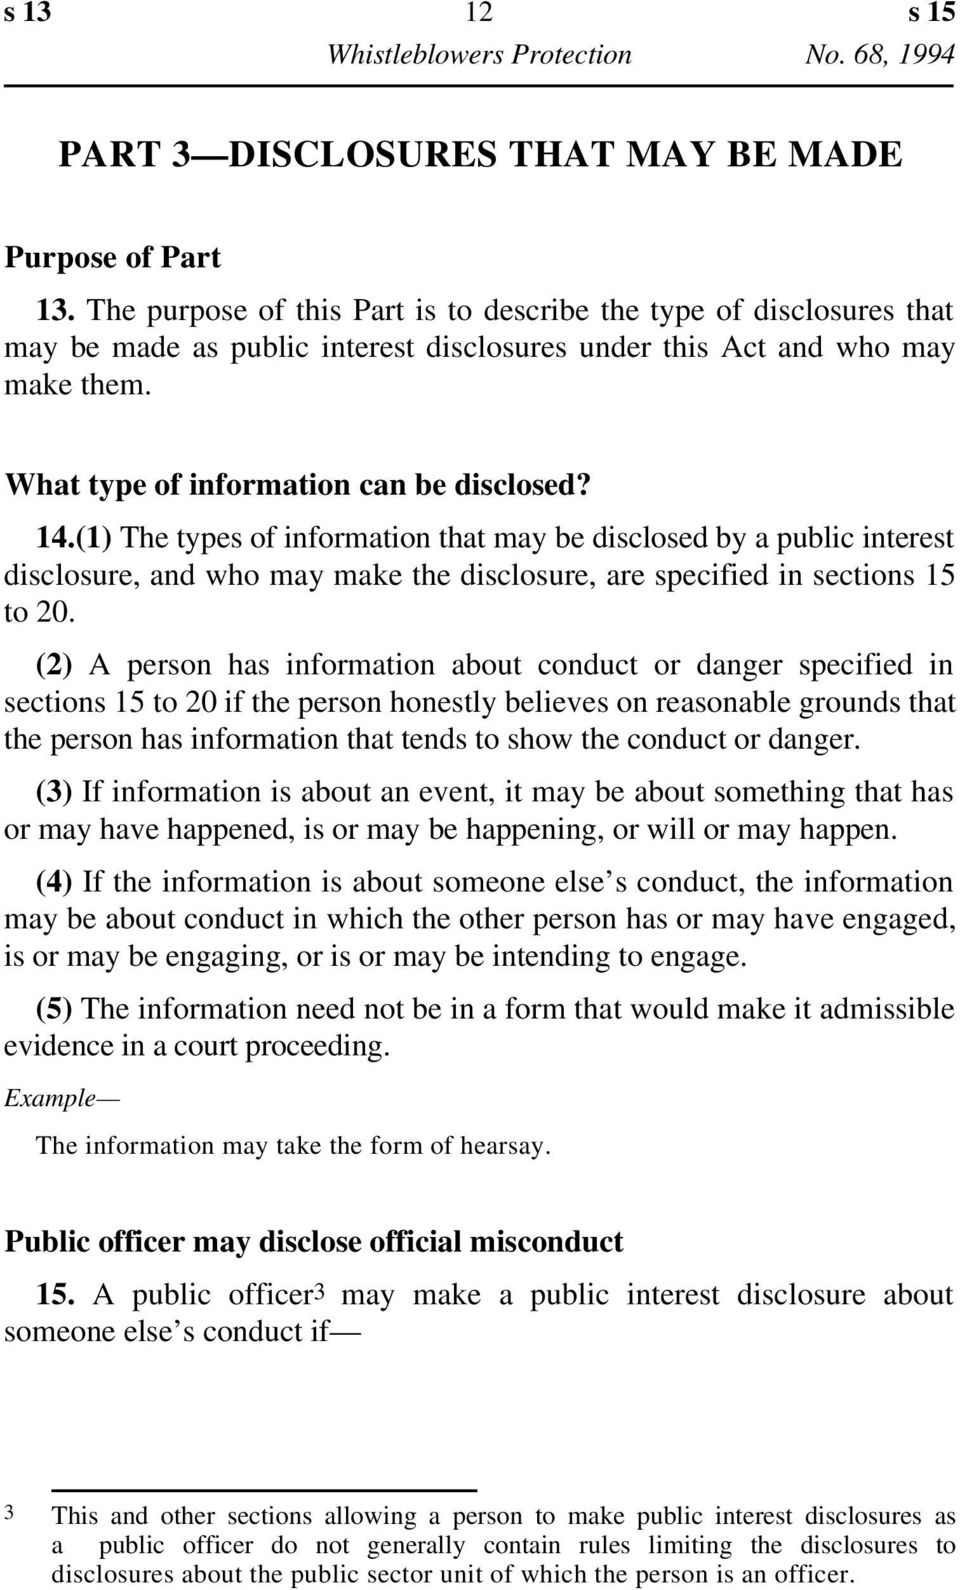 (1) The types of information that may be disclosed by a public interest disclosure, and who may make the disclosure, are specified in sections 15 to 20.